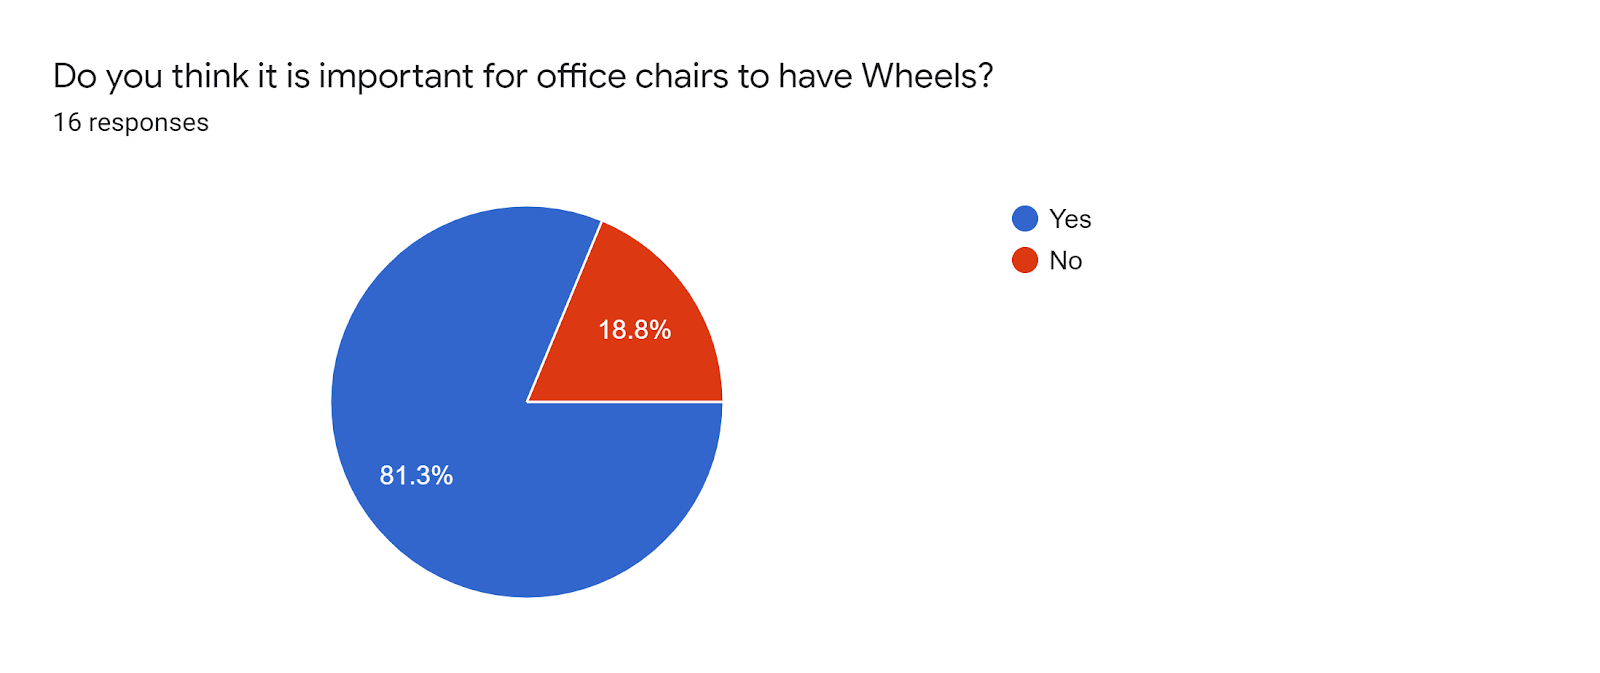 Forms response chart. Question title: Do you think it is important for office chairs to have Wheels?. Number of responses: 16 responses.